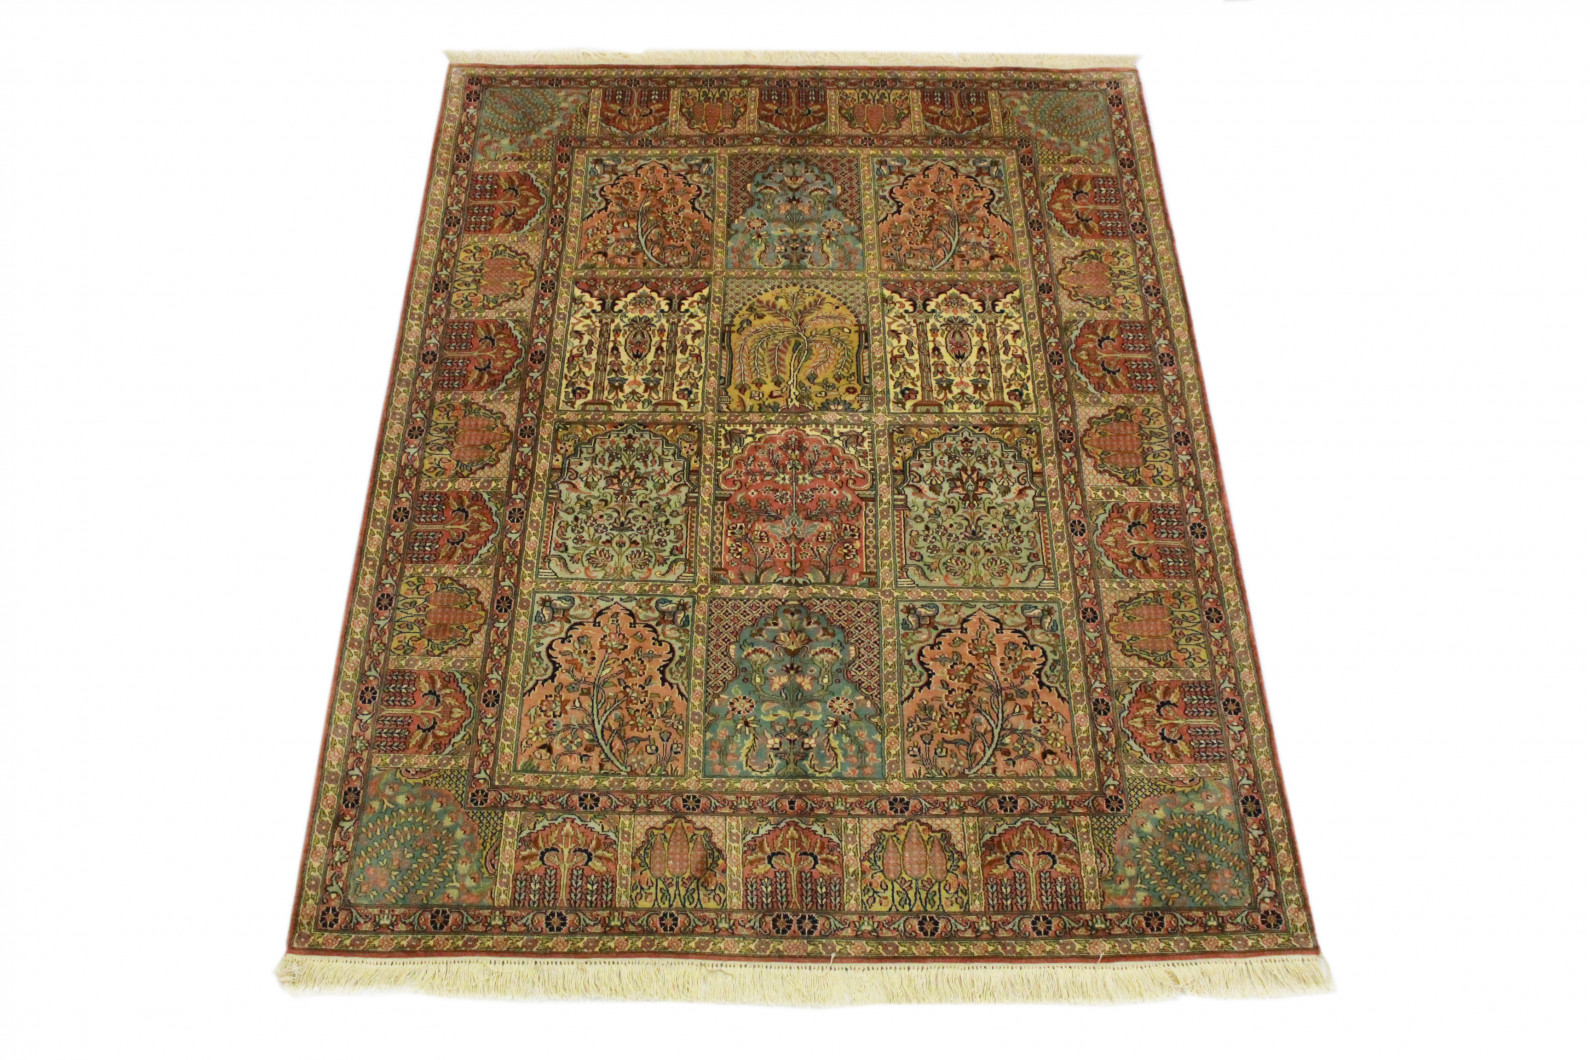 Silk Rug Beige Blue In 210x160 5140 21 Buy Online At